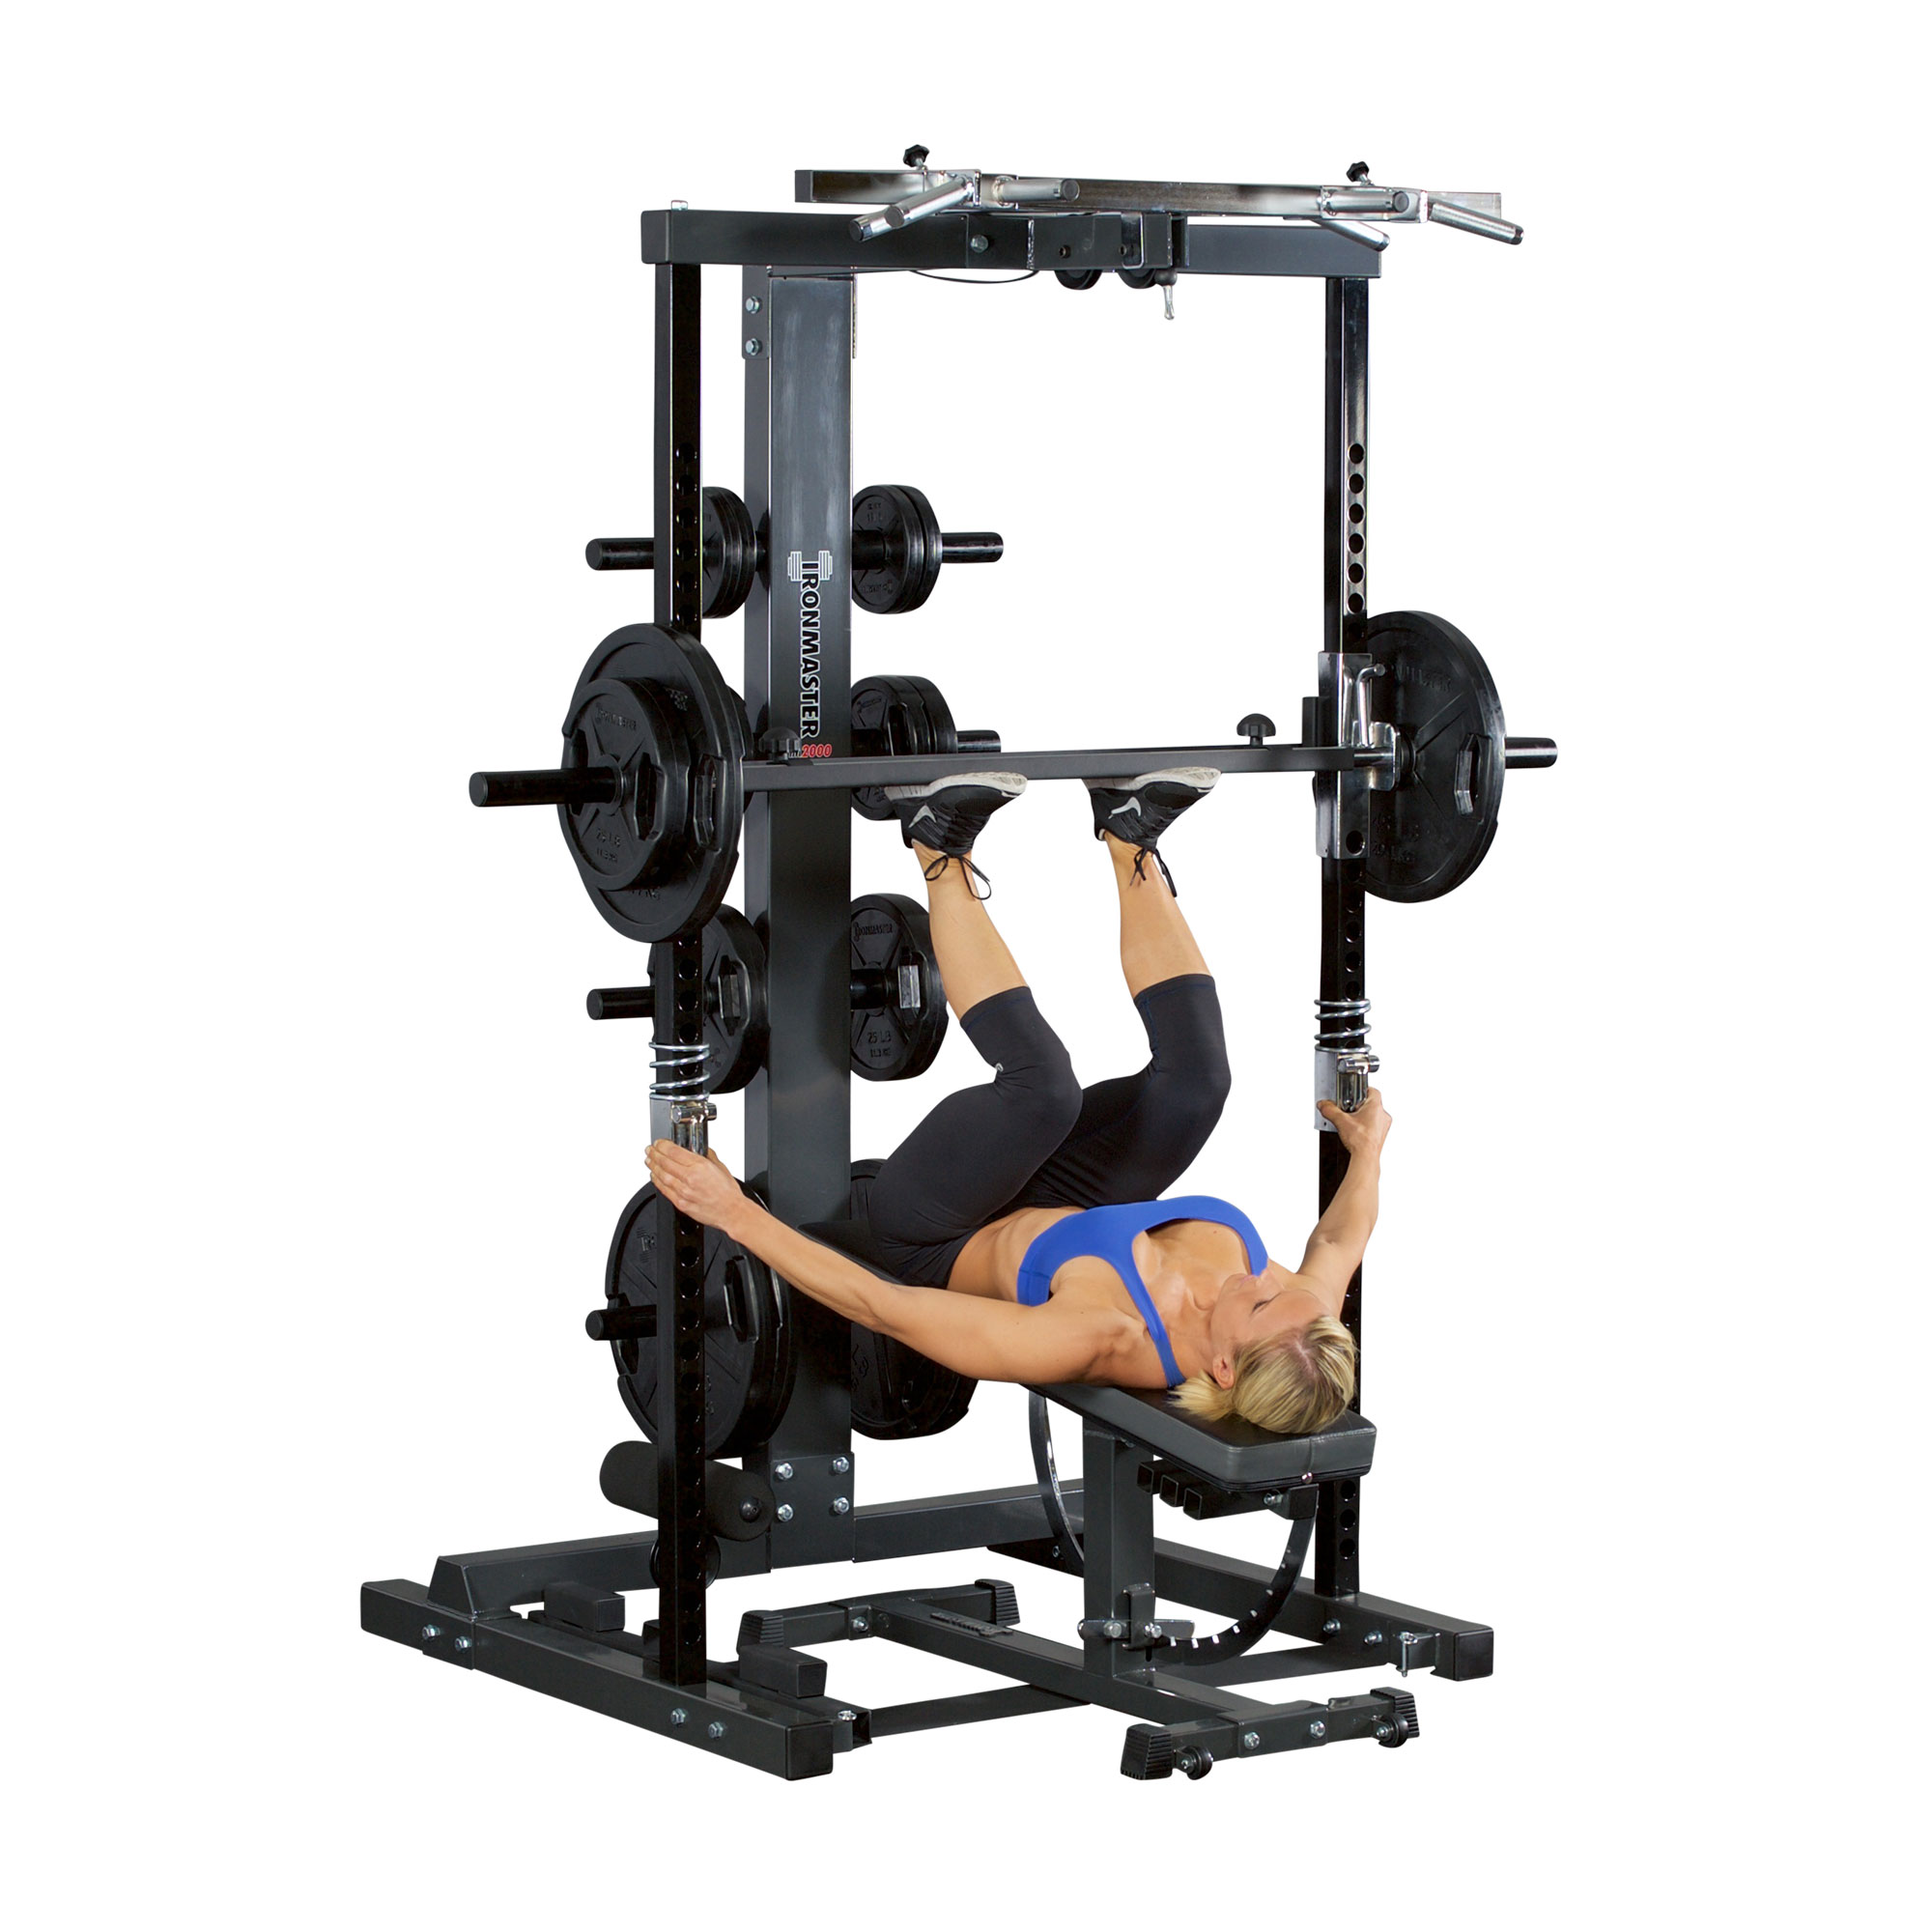 IronmasterUK IM2000 leg press attachment